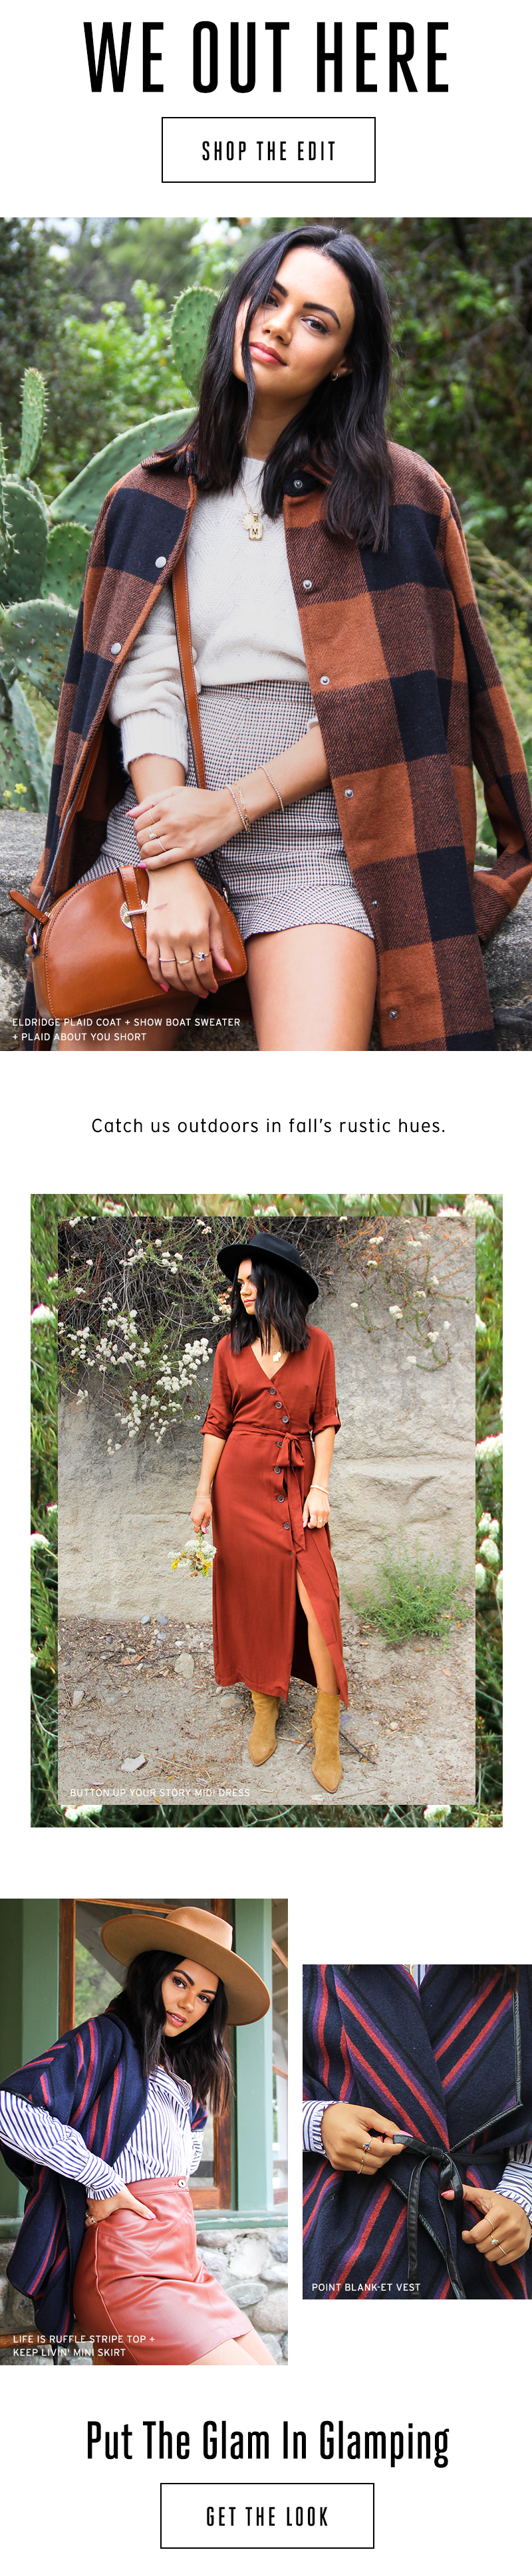 WE OUT HERE. Catch us outdoors in fall's rustic hues. Shop The Edit